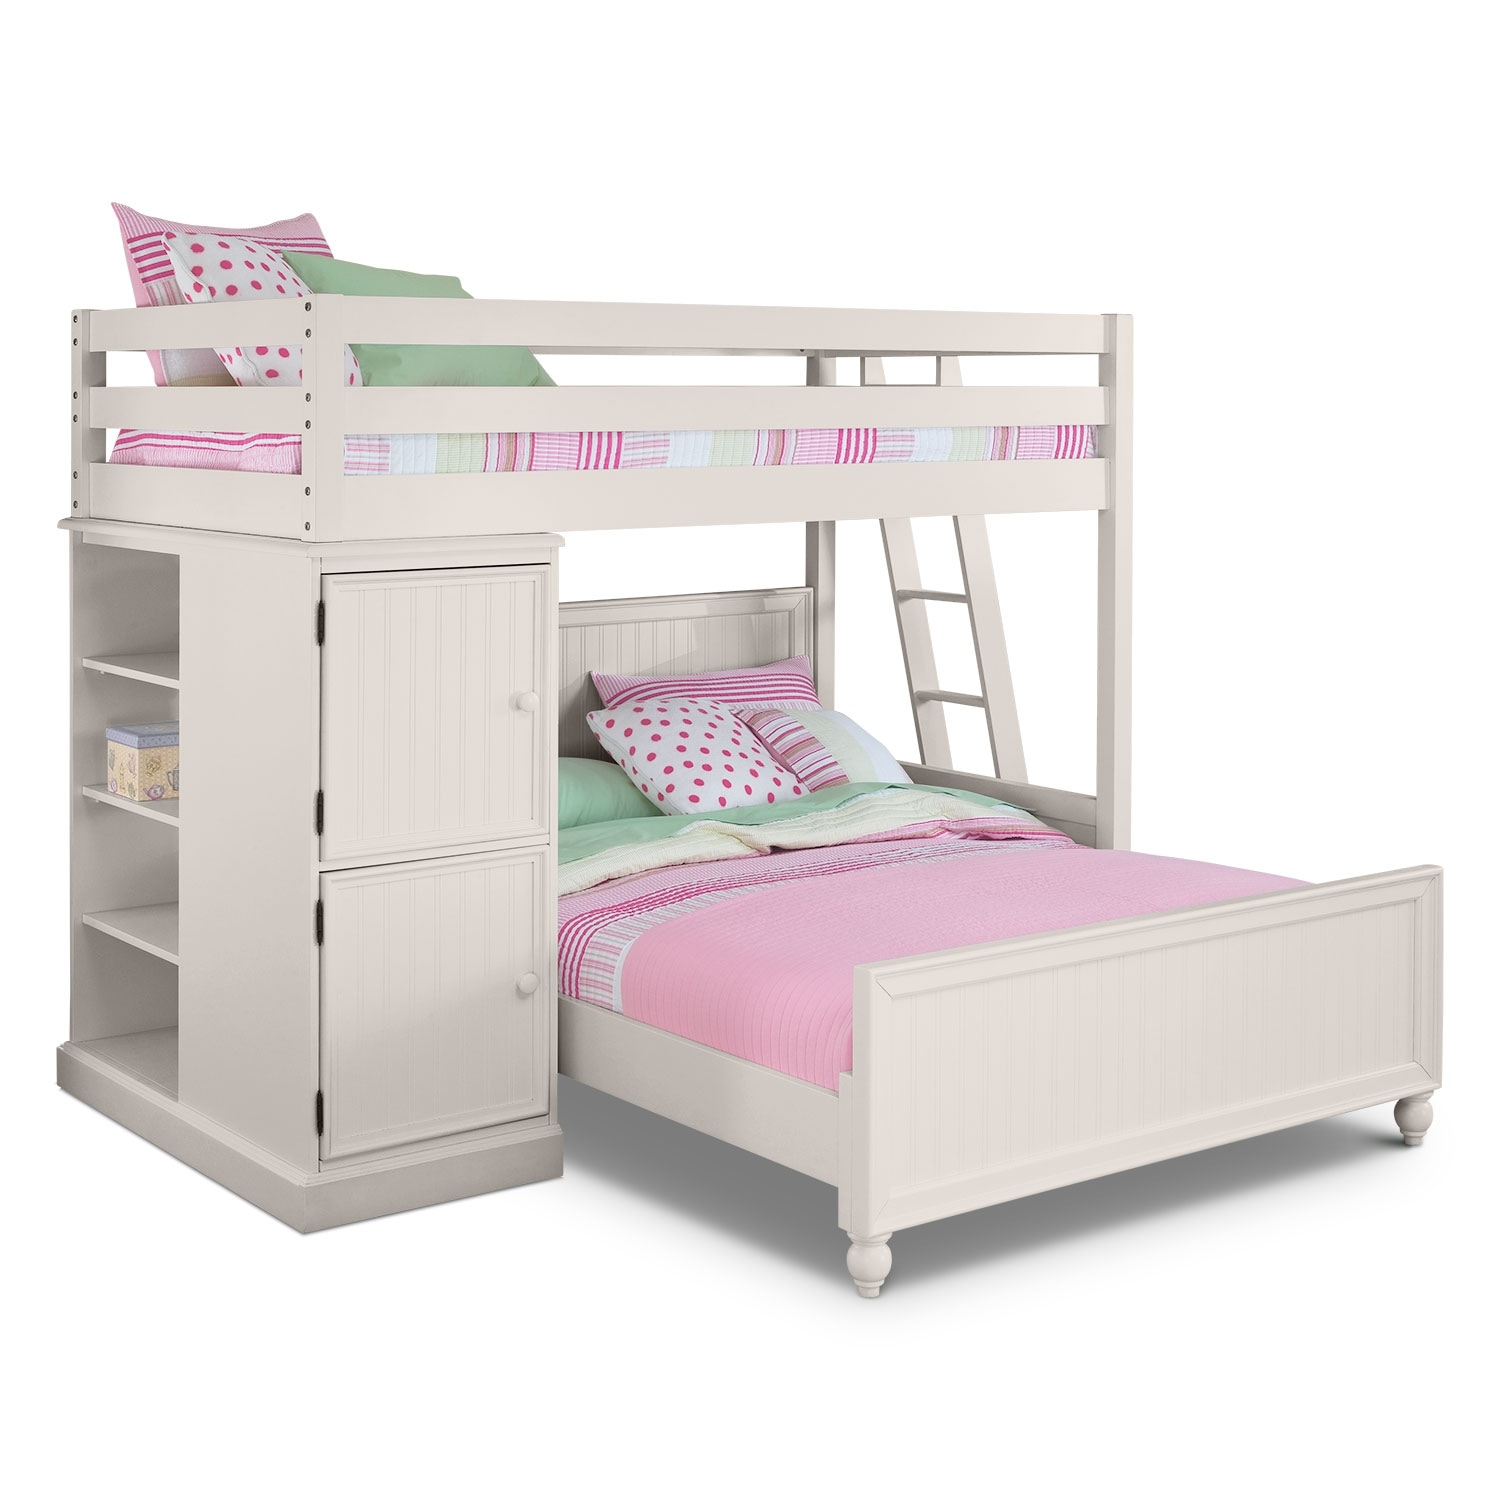 Colorworks White II Loft Bed with Full Bed